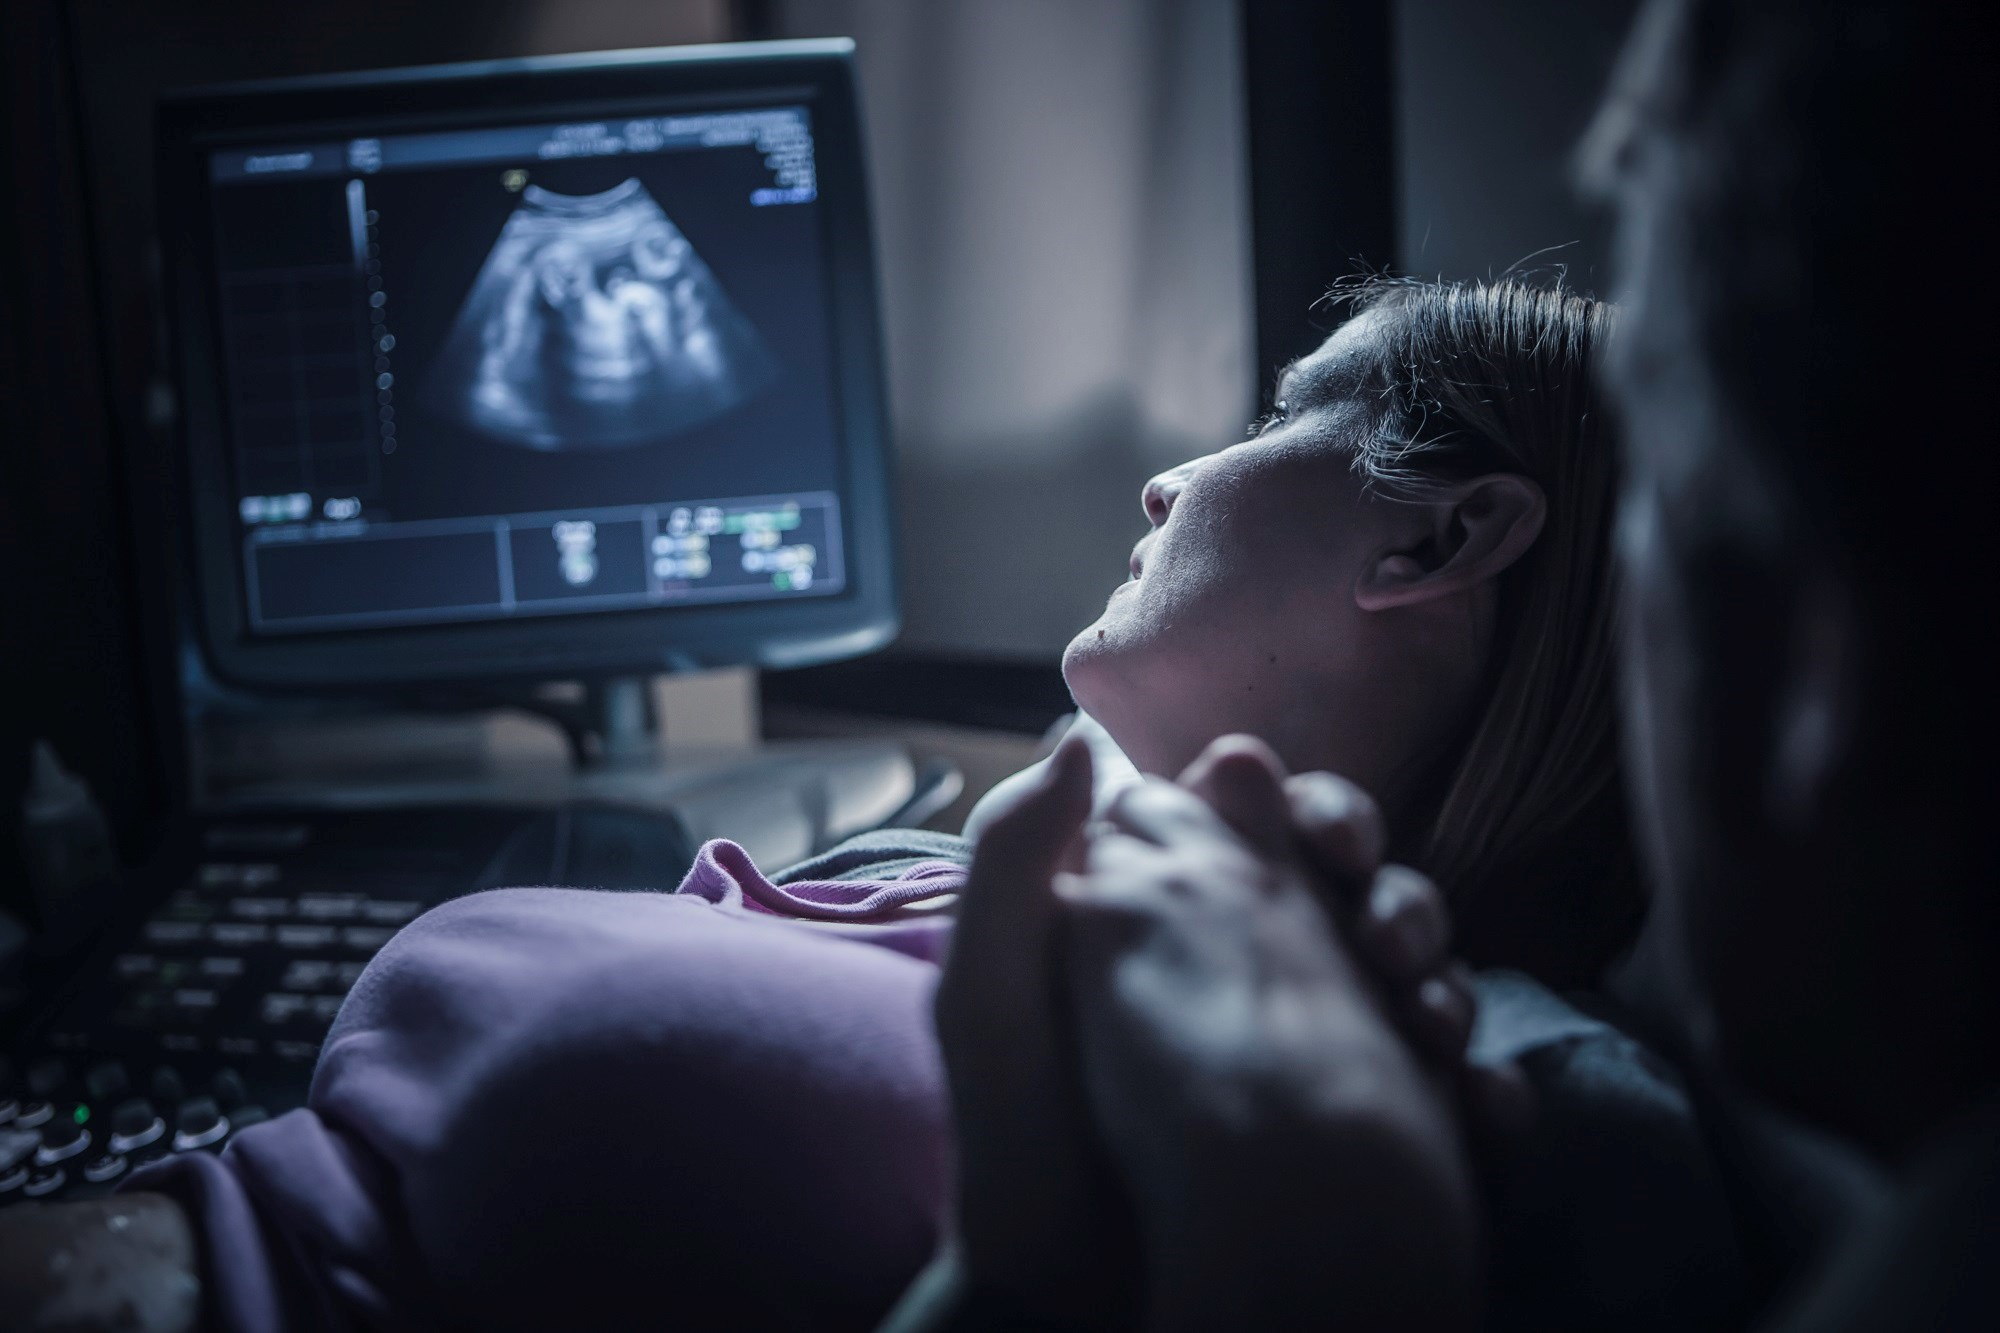 No significant decrease in miscarriage rates was found in women treated with cfDNA with direct invasive procedures when warranted vs direct invasive procedures alone.